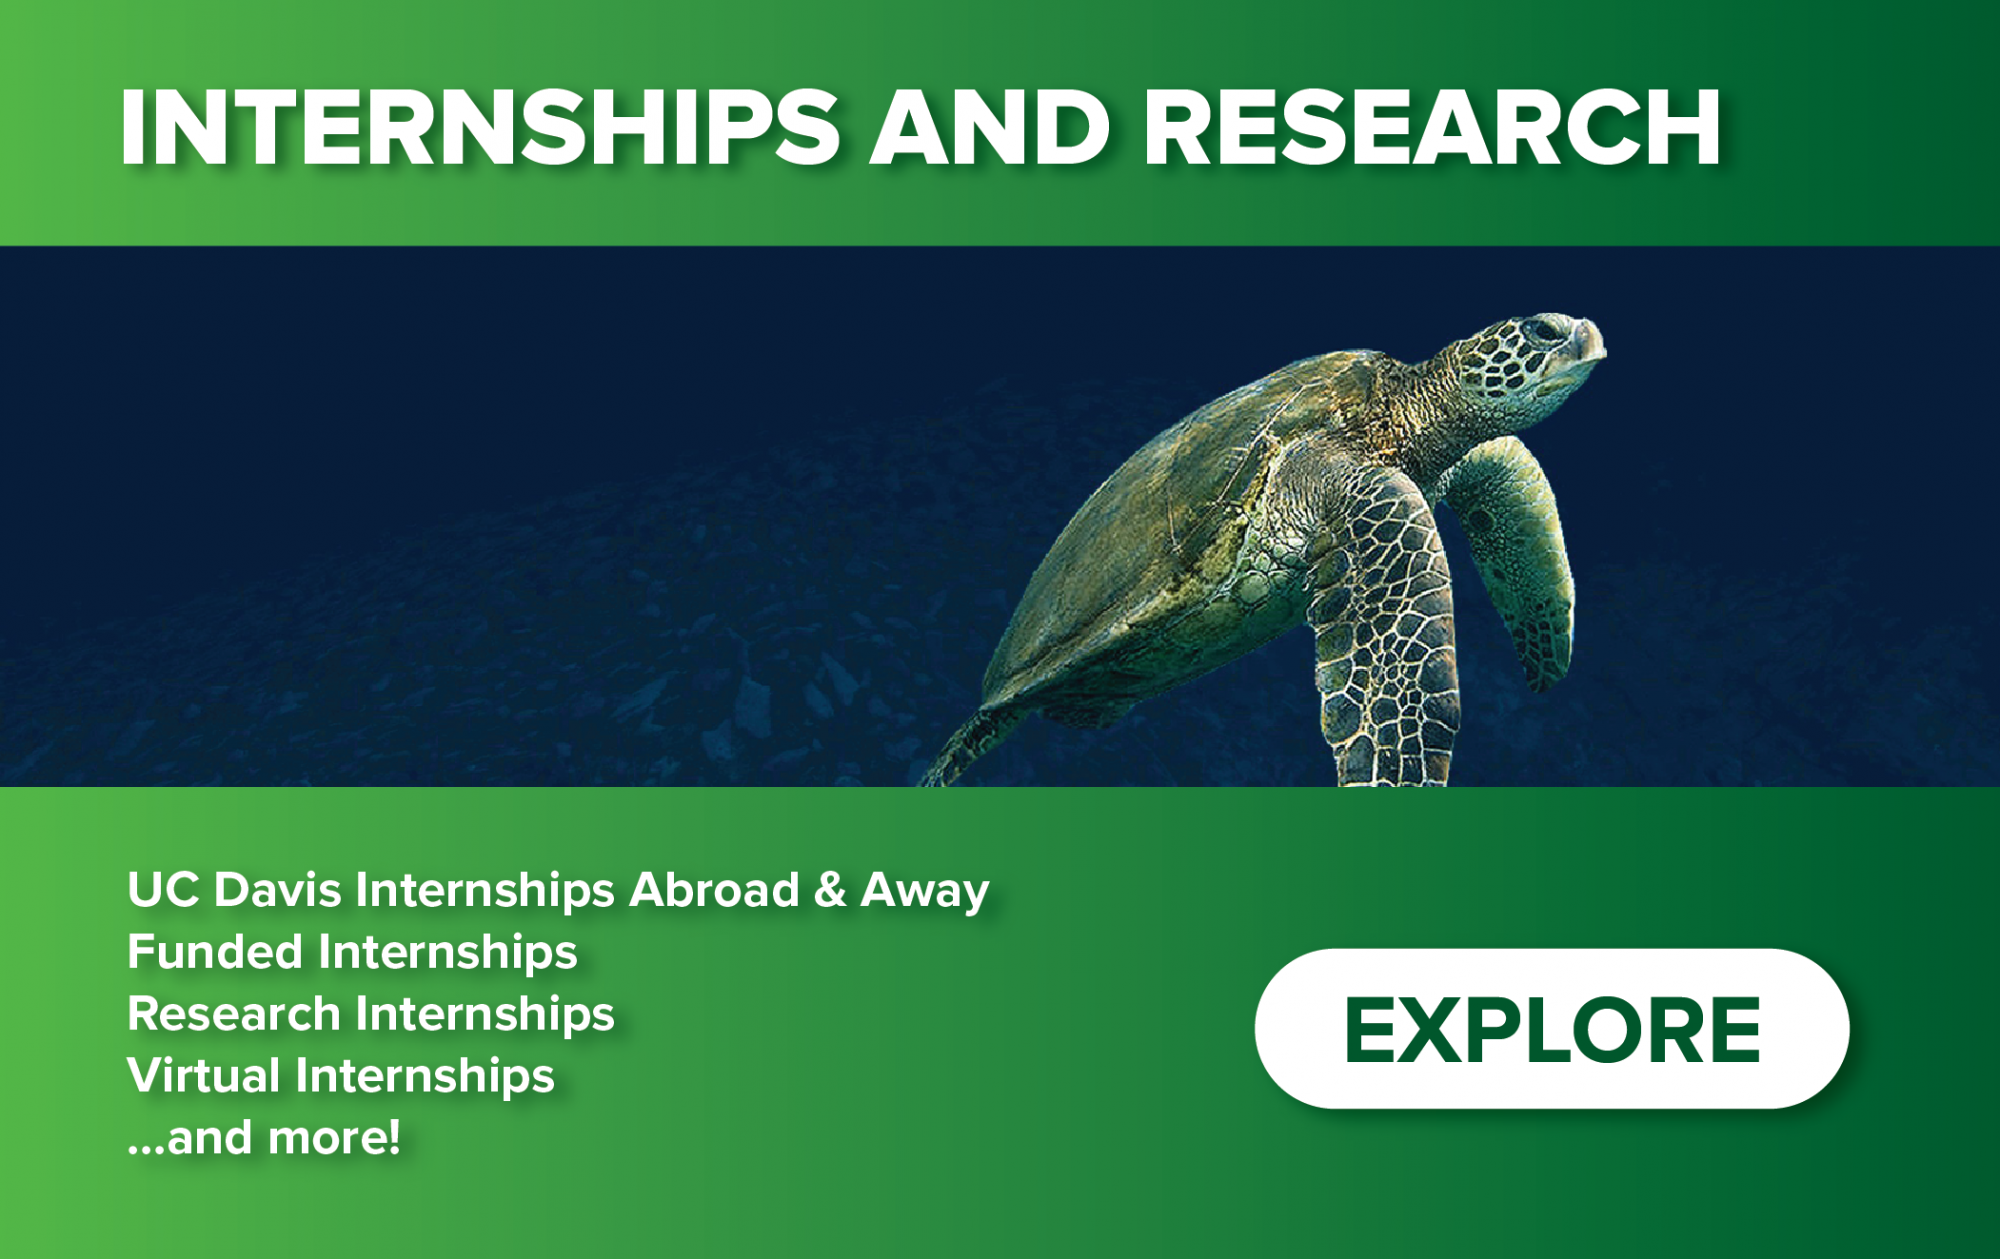 Homepage Teaser Image - Internships and Research Portal - UC Davis Internships Abroad and Away; Funded Internships; Research Internships; Virtual Internships; and more